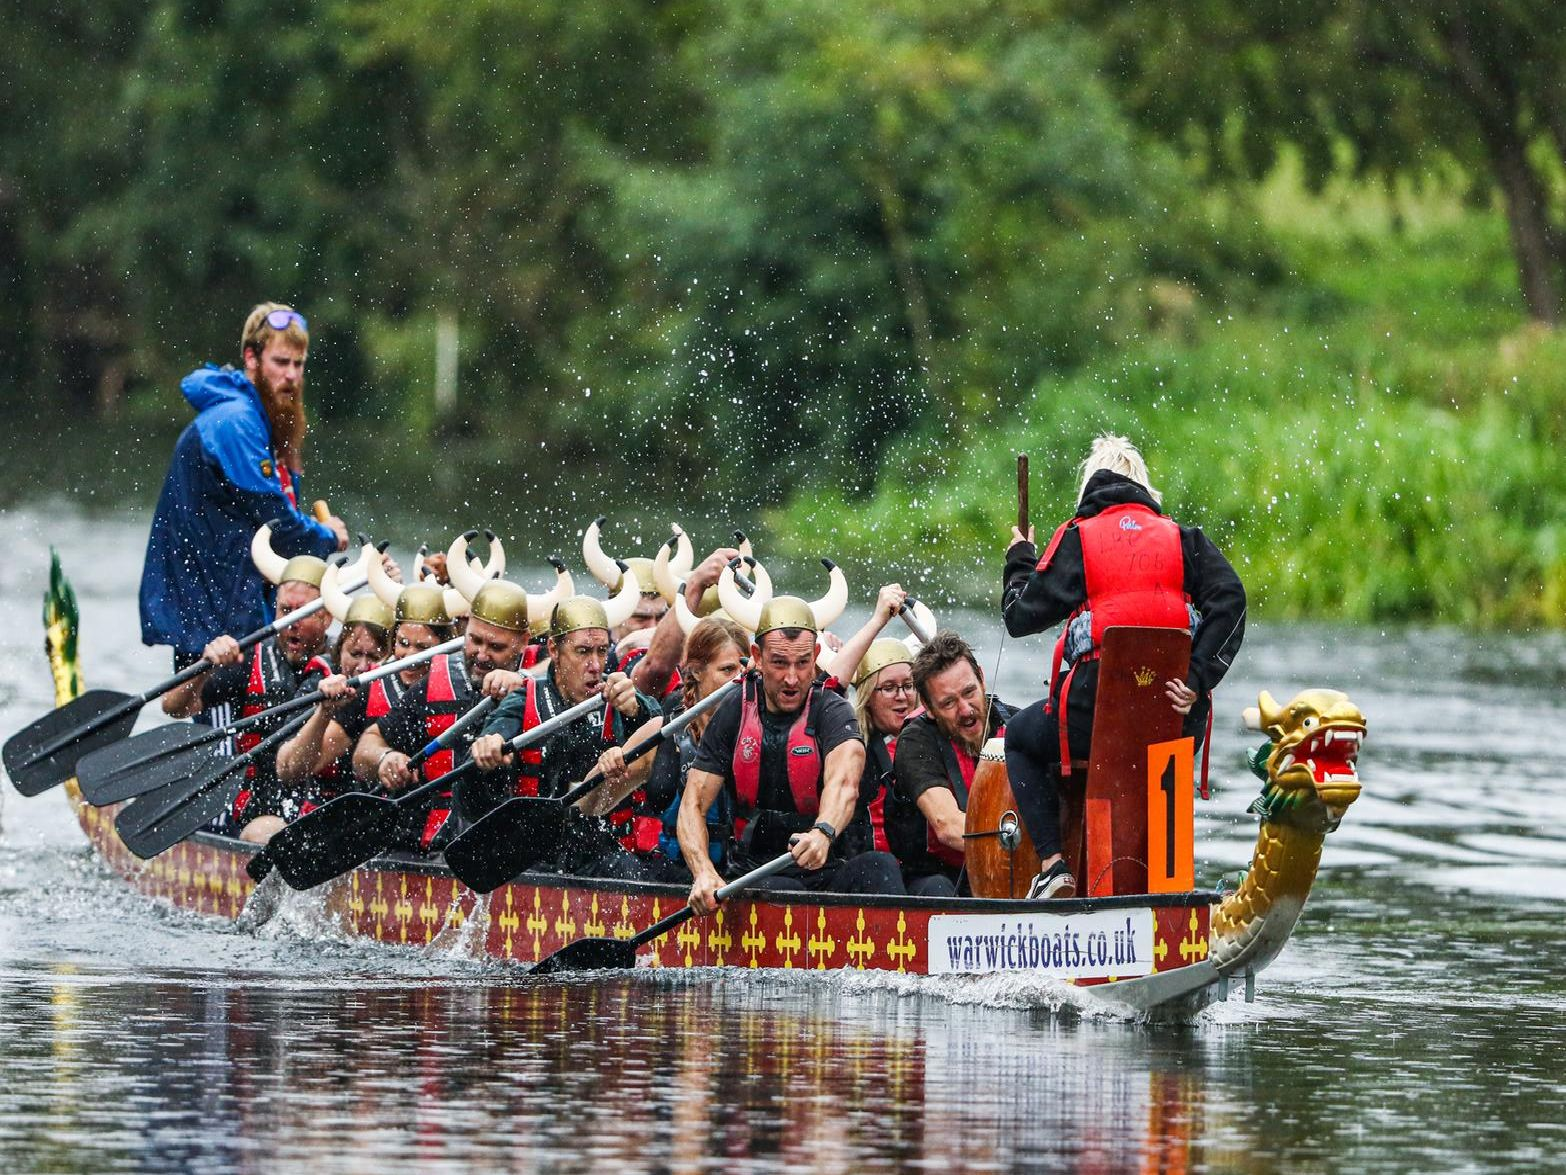 The Rotary Club of Warwick Avon held their annual charity dragon boat races in Warwick last weekend. Photo by Sarah Hill